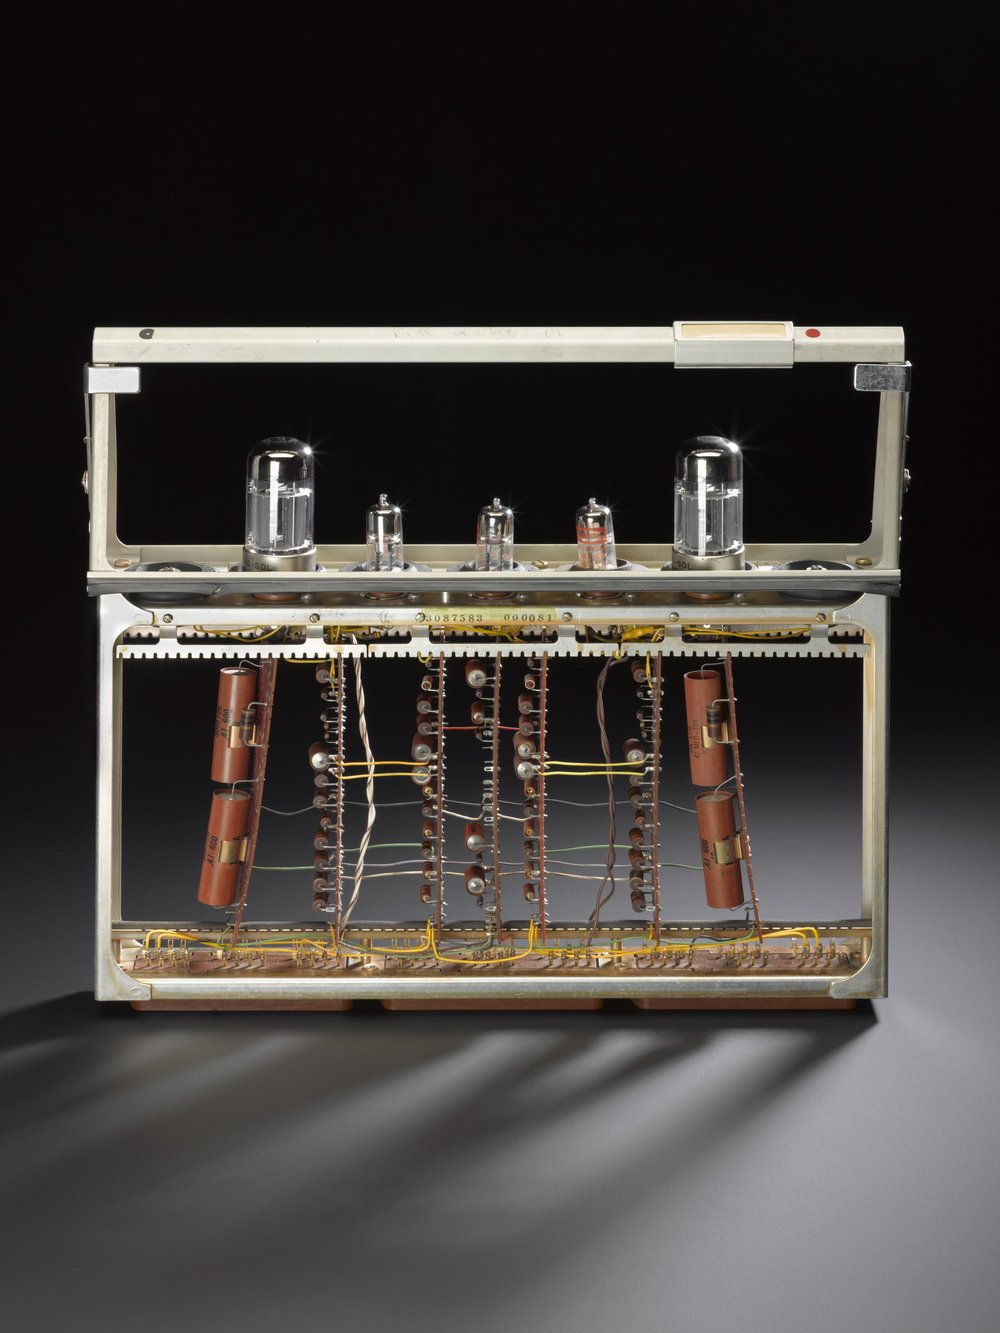 Module from SAGE, containing 5 valves and 7 printed circuit boards, made by IBM (1963-1984). More information